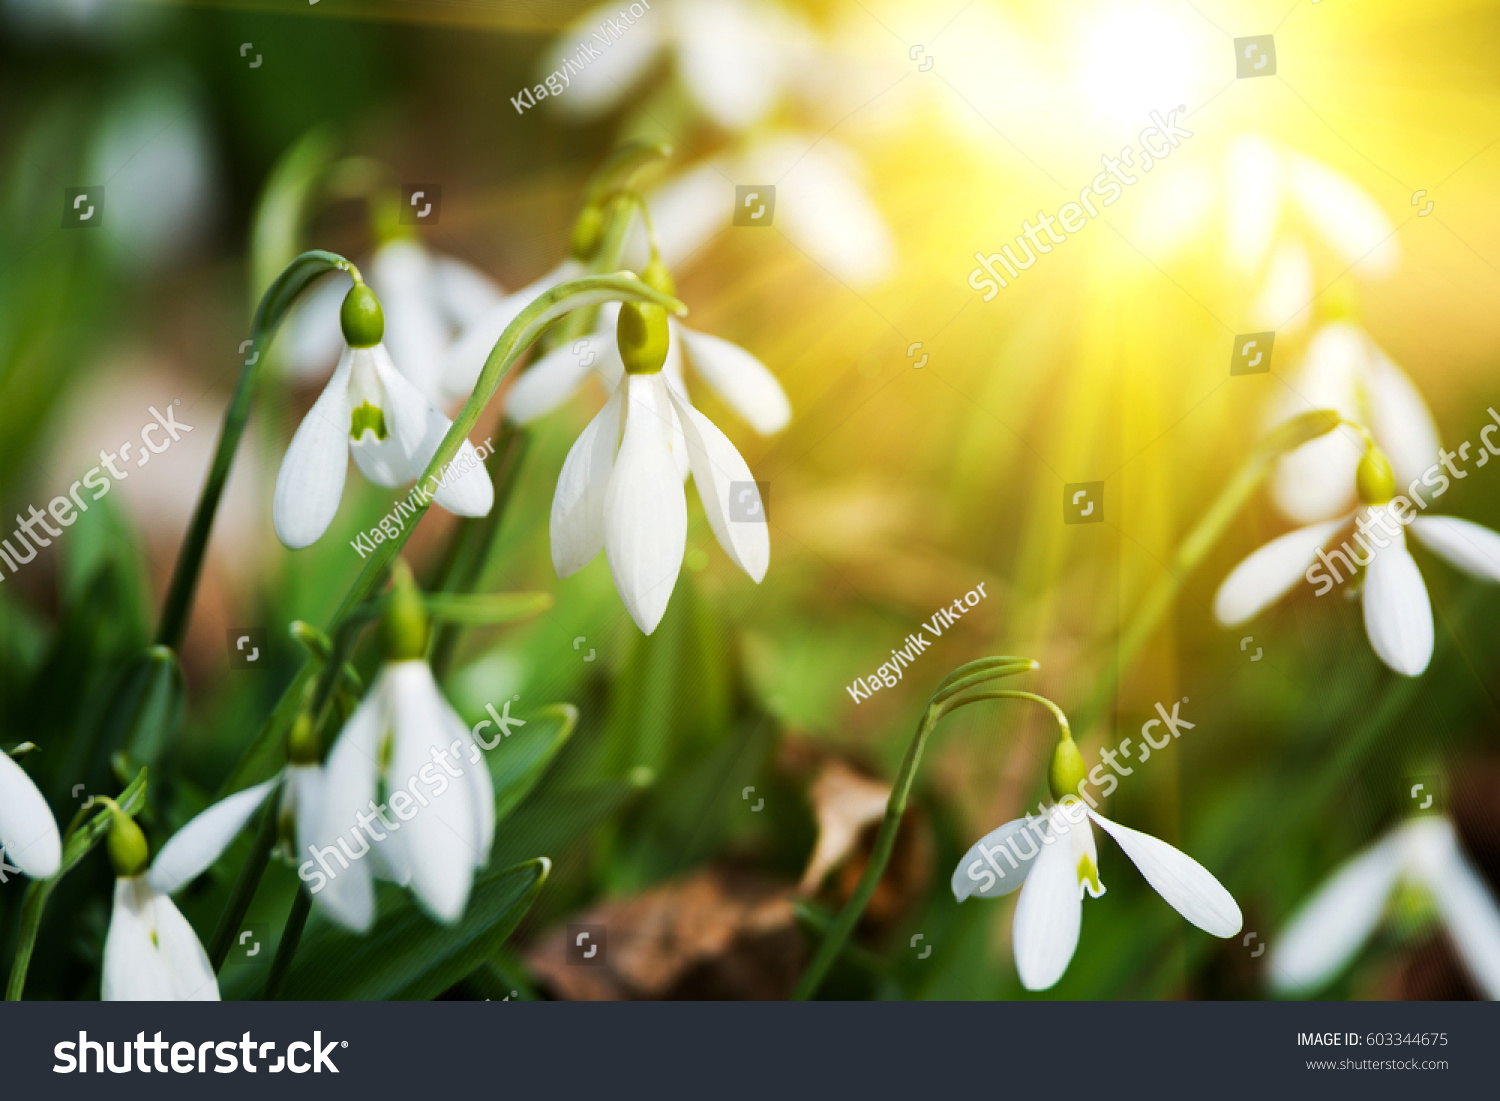 White Snowdrop Flowers Spring Stock Photo Edit Now 603344675